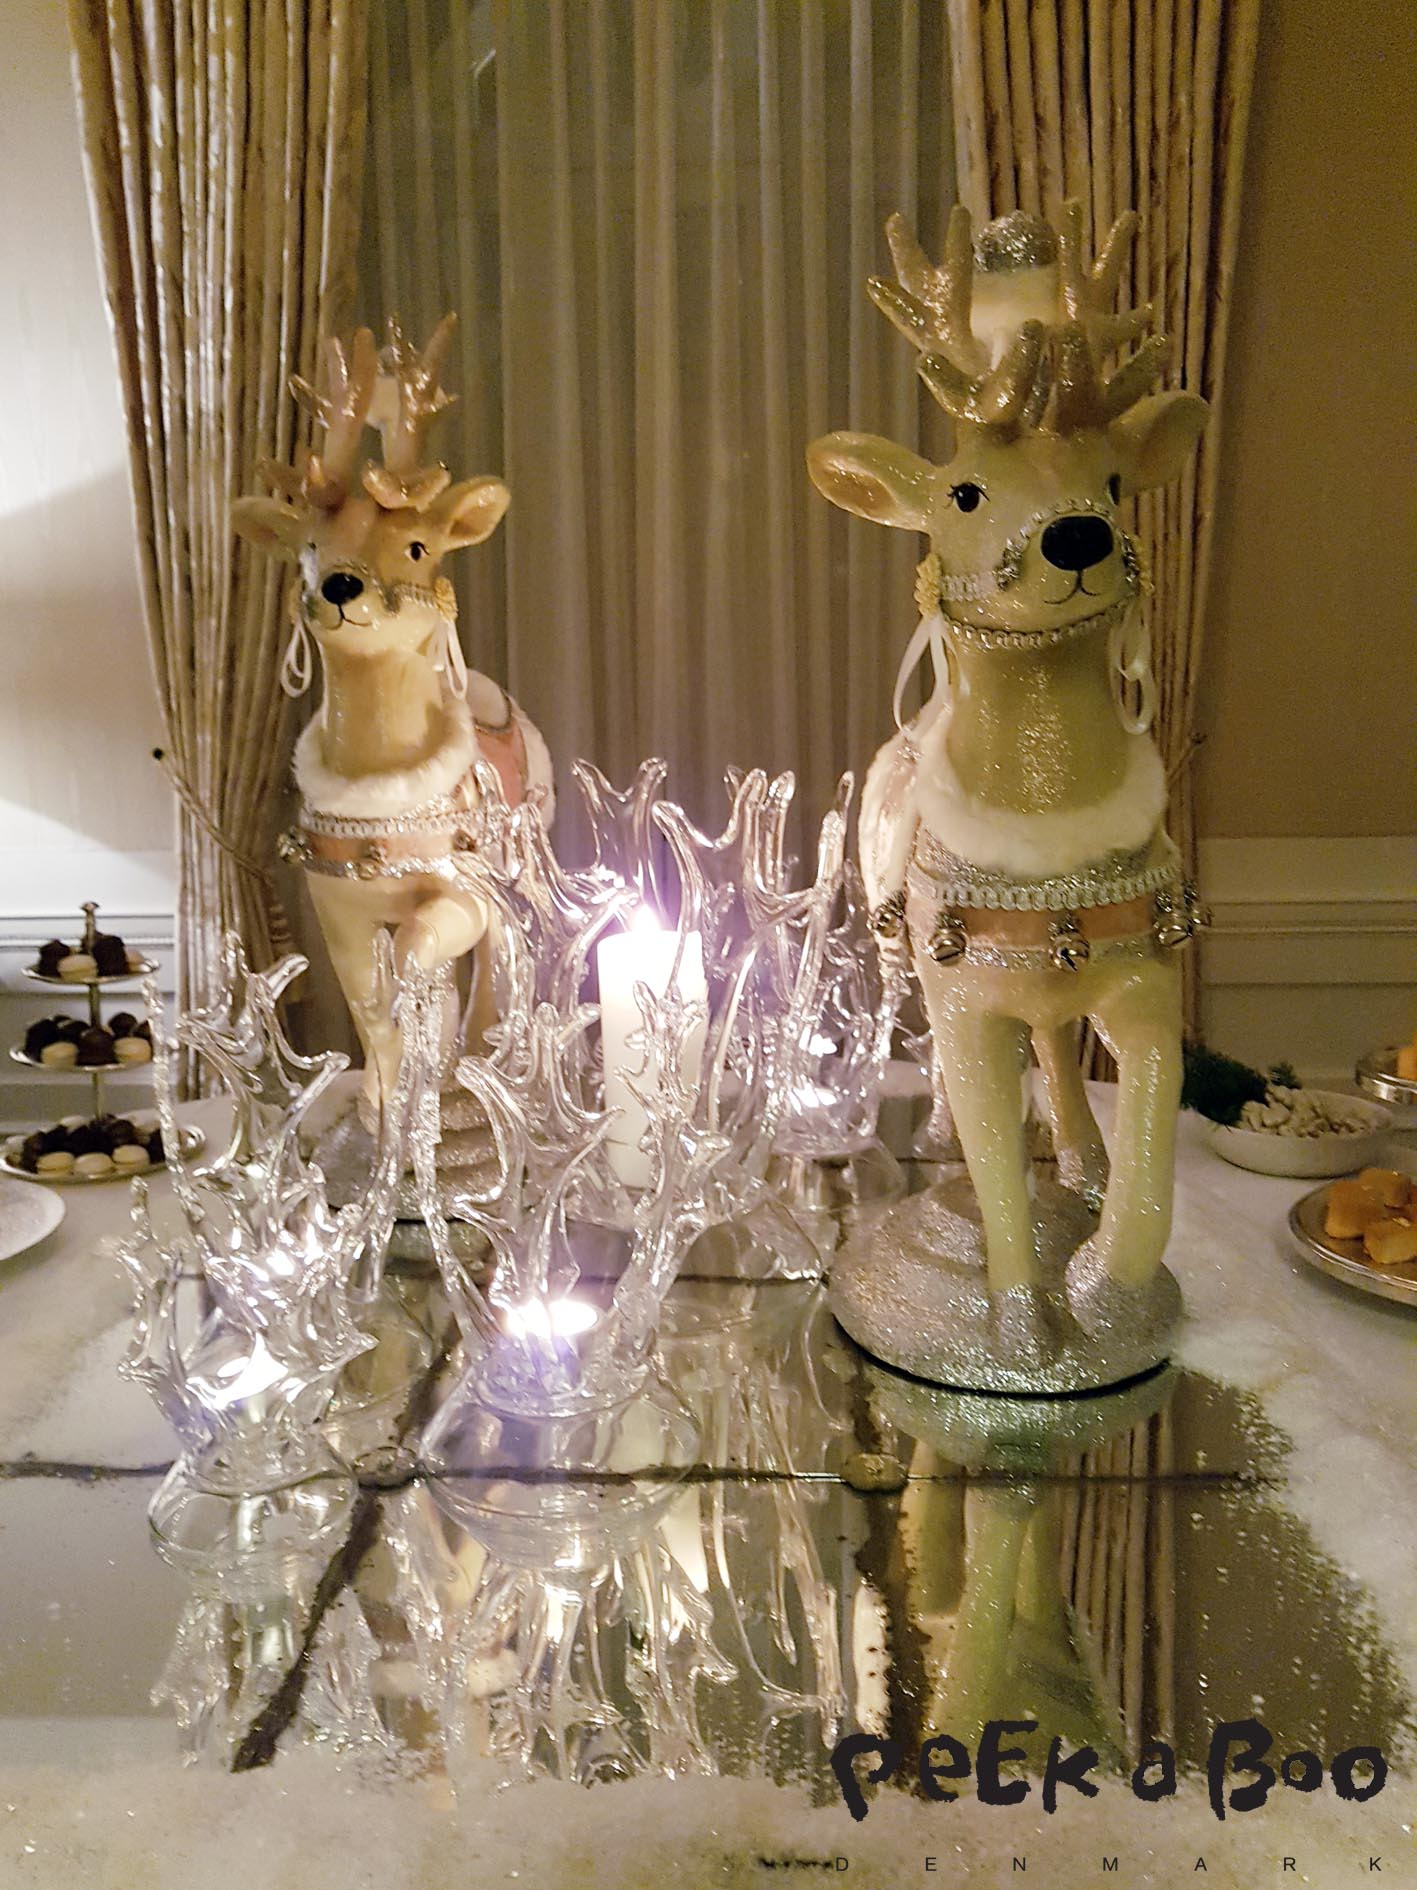 As part of the suite there is also a dining room, today decorated with these wonderful creatures.